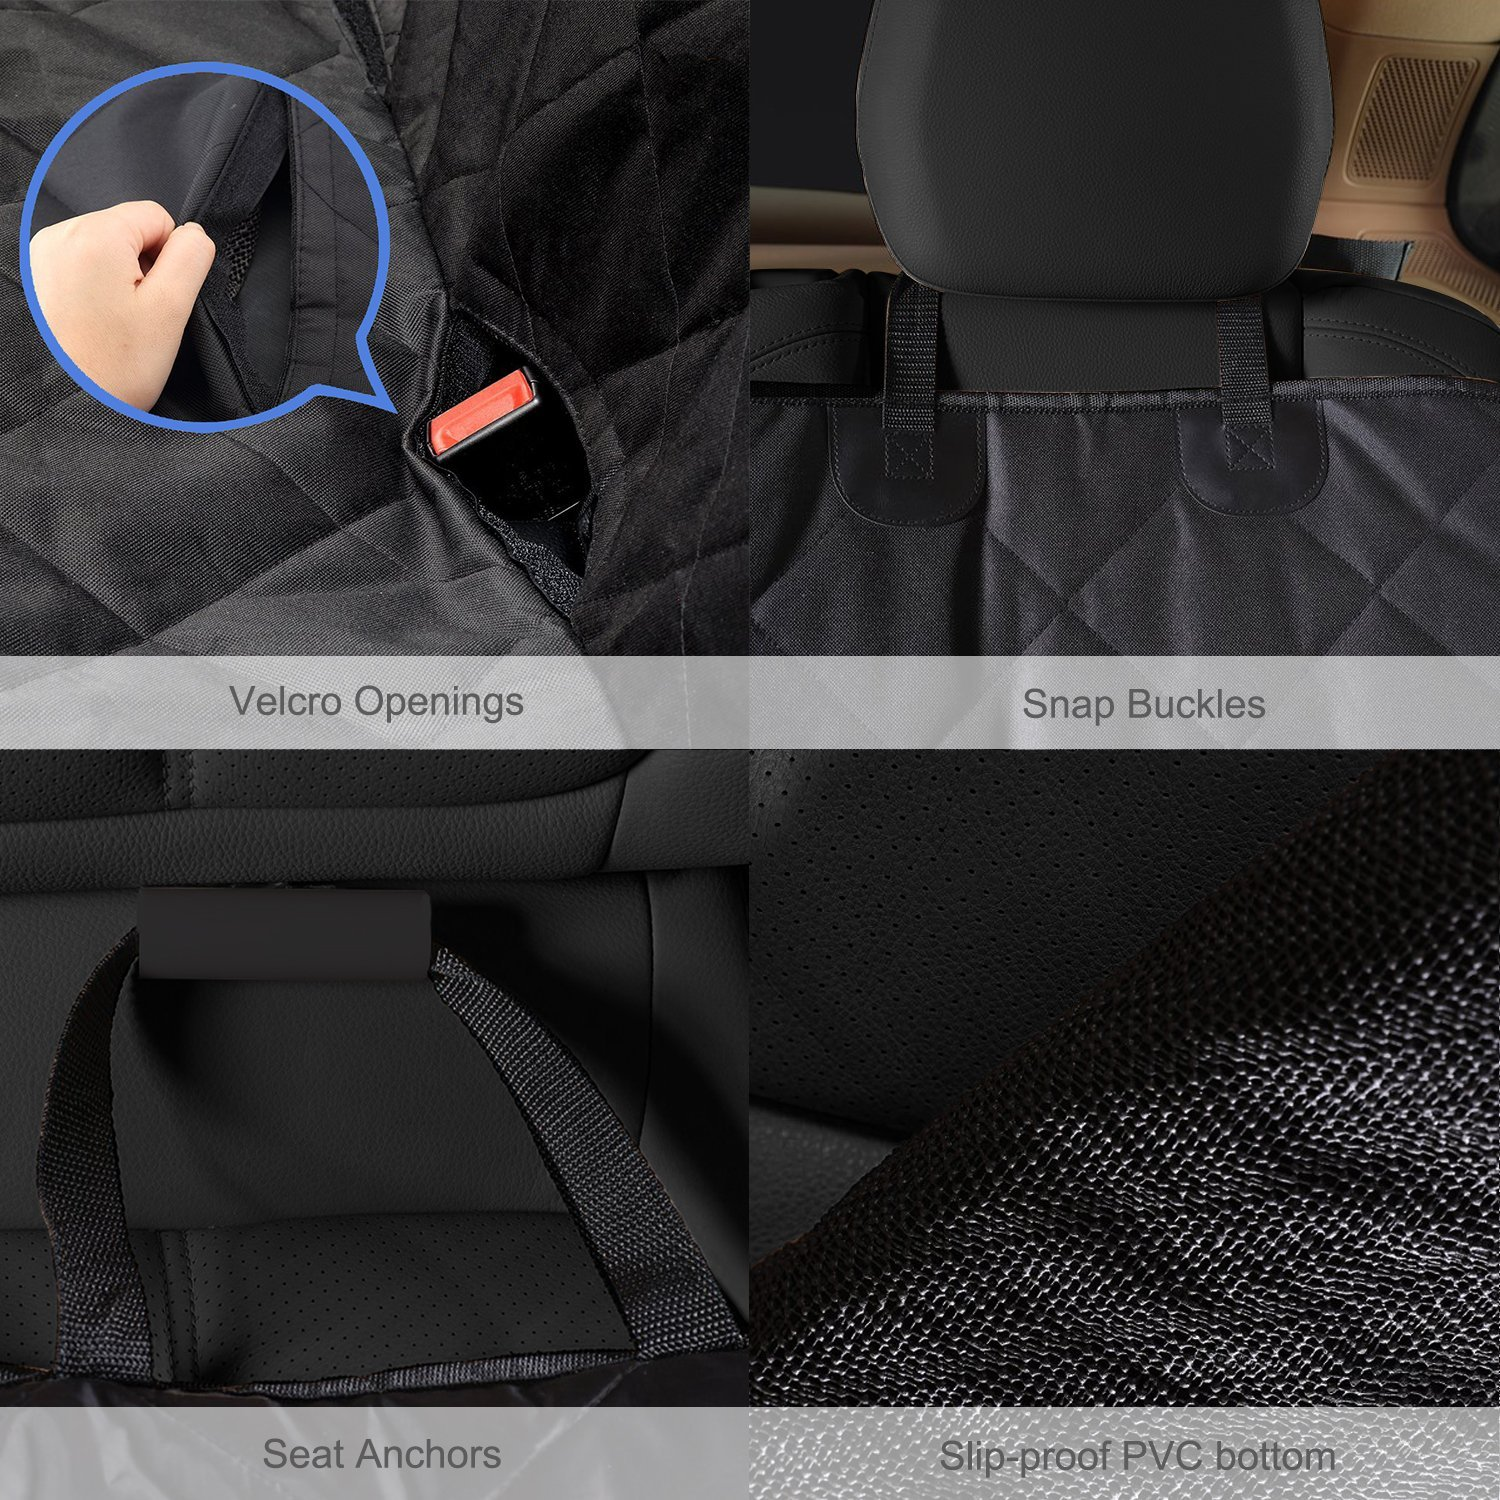 GELOO Bench Car Seat Cover Protector Waterproof, Heavy-Duty and Nonslip Pet Car Seat Cover for Dogs with Universal Size Fits for Cars, Trucks & SUVs by GELOO (Image #5)